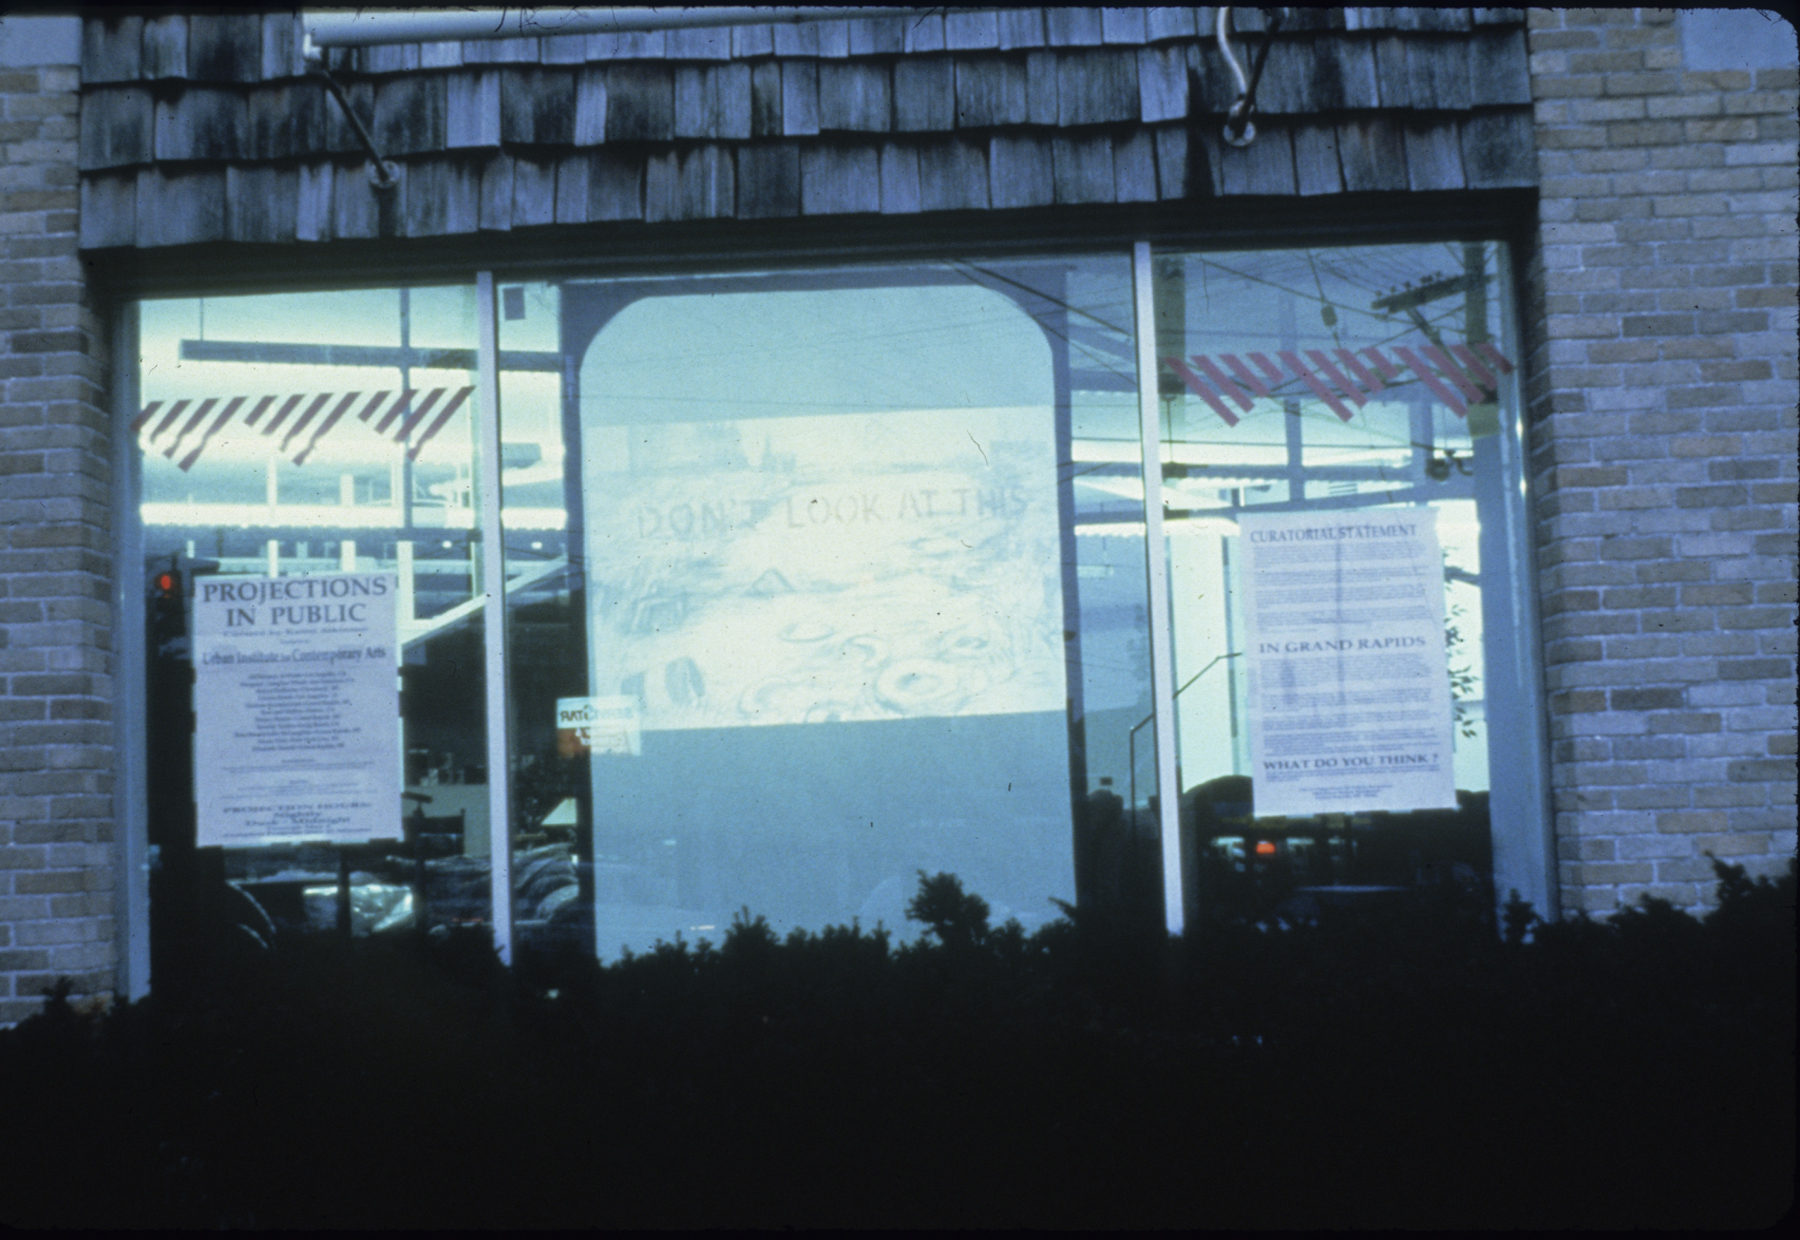 Projections In Public: Grand Rapids